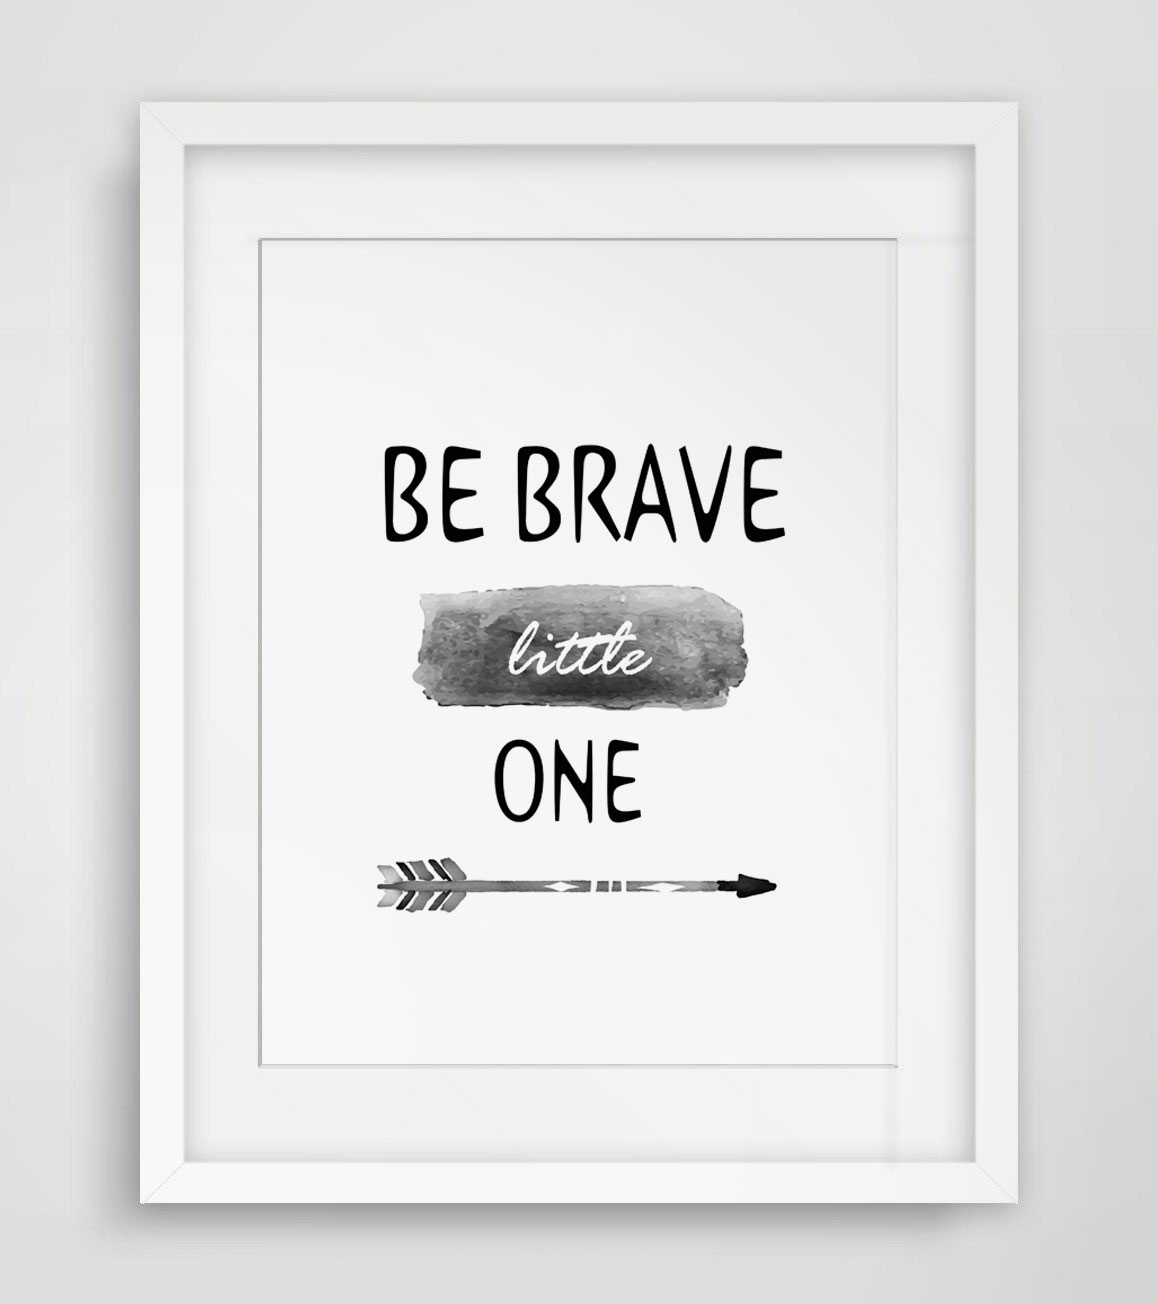 I Love You More Than Quotes: Inspirational Quote Print Baby Nursery Be Brave Little One